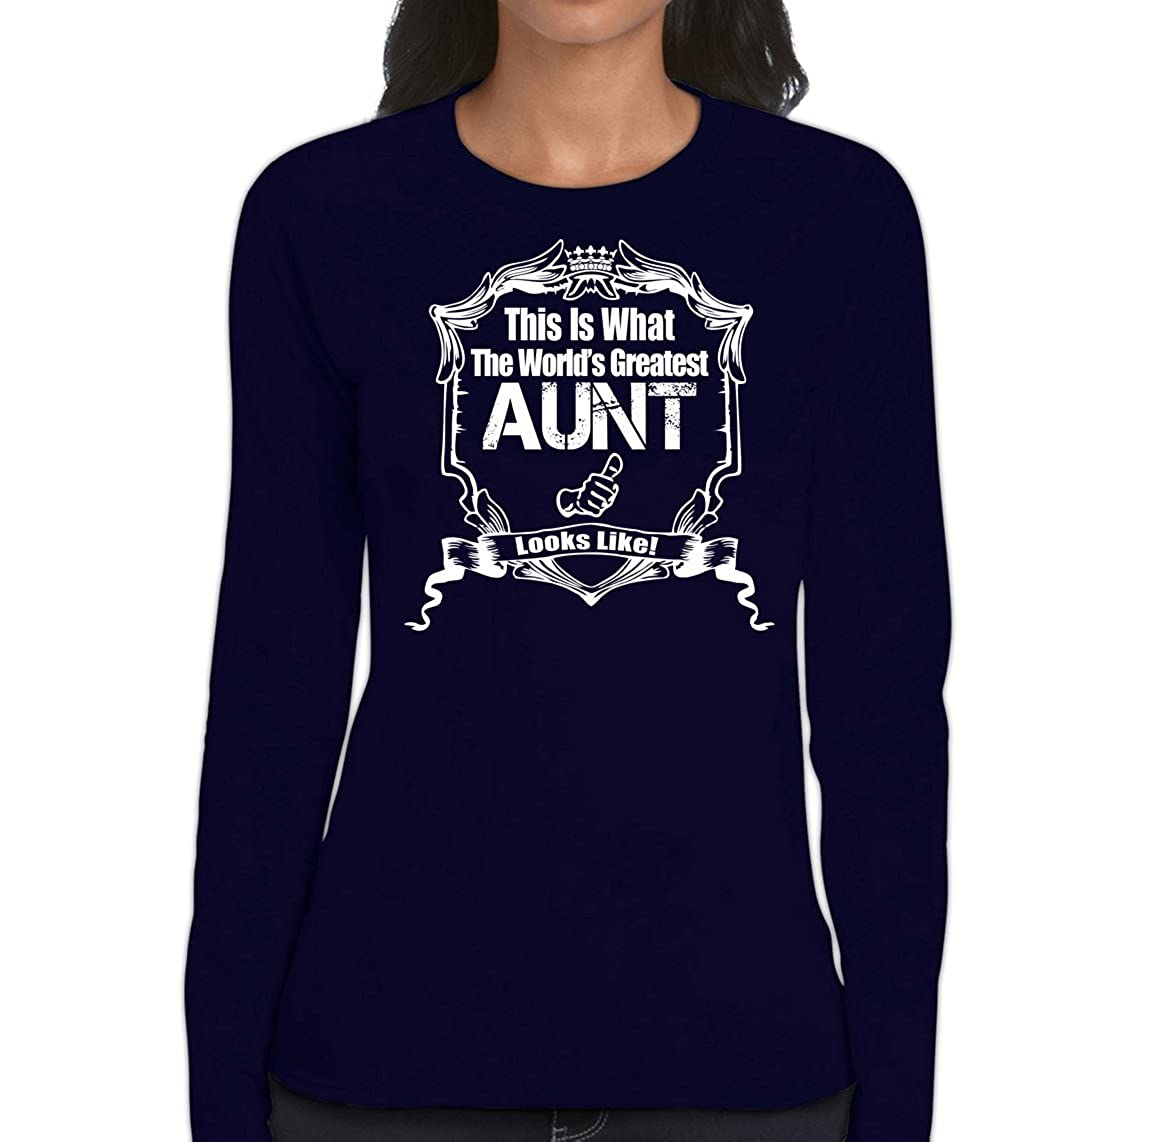 Amazon.com: AW Fashions This is What The Worlds Greatest Aunt Looks Like - Womens Long Sleeve Tee: Clothing